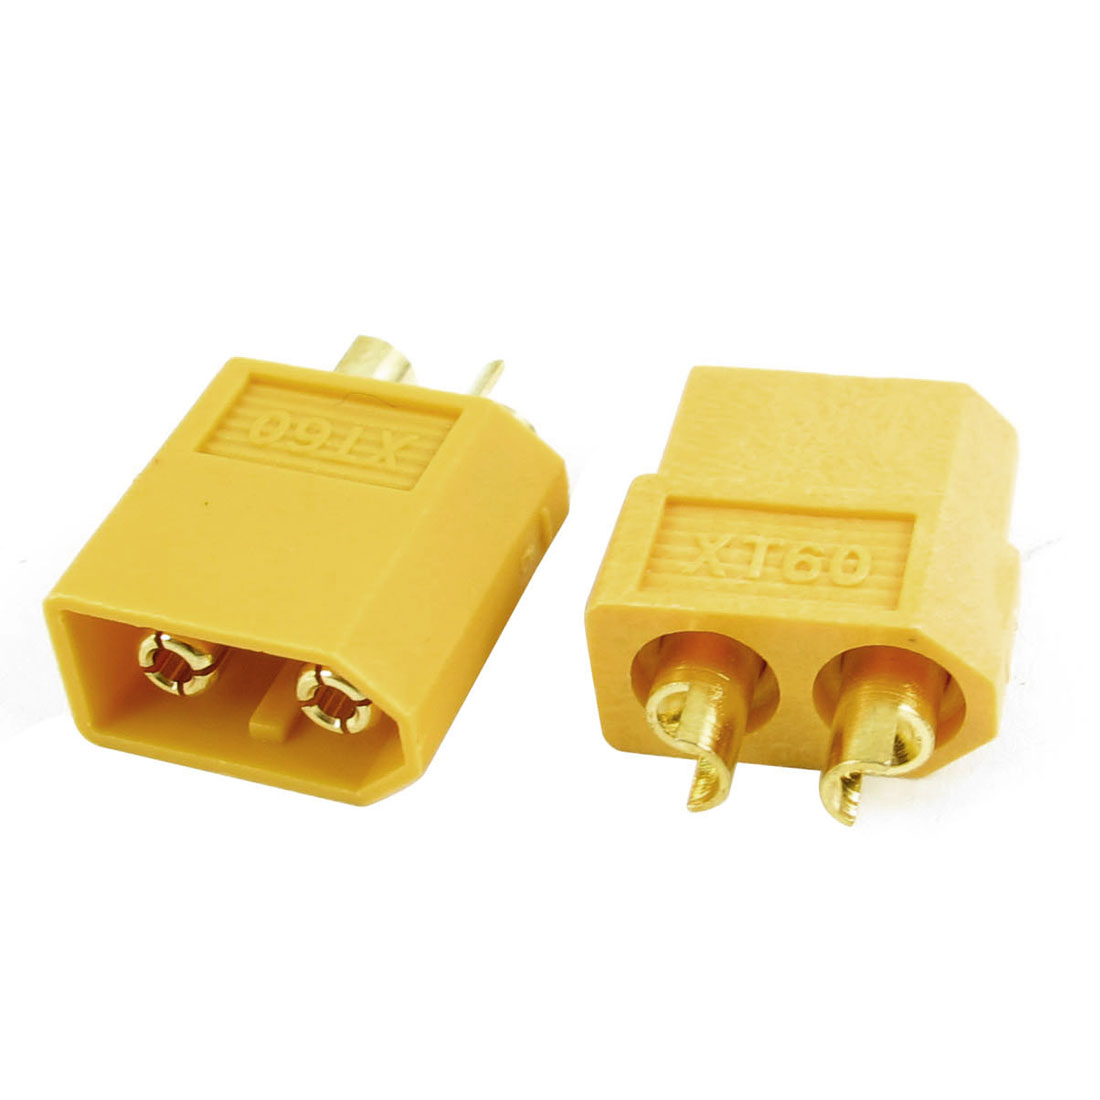 RC Model Part Male Female XT60 Connector Adapter Yellow 4mm Pair